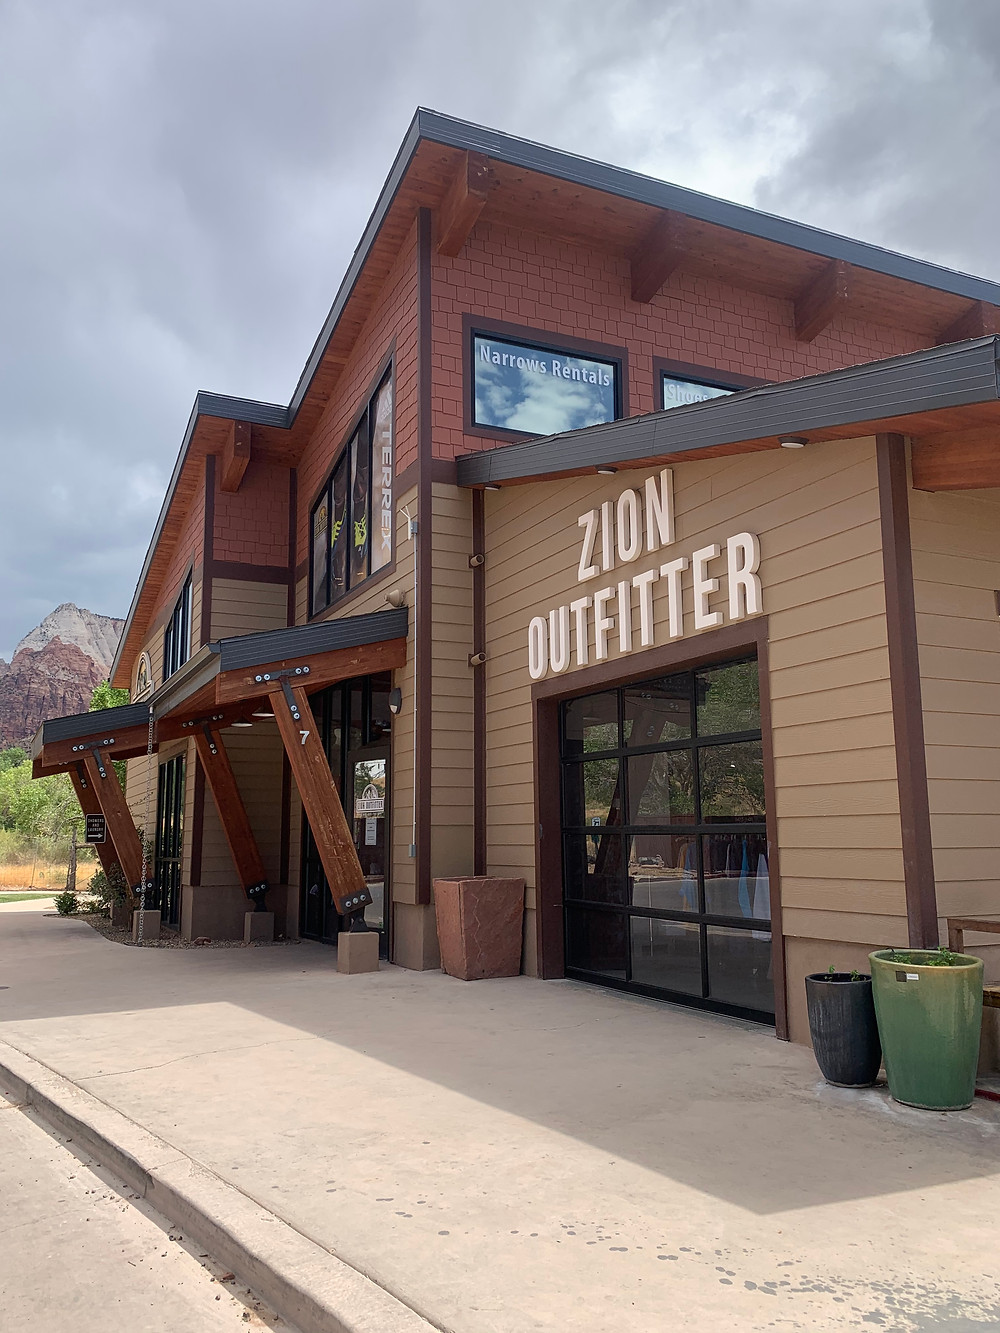 Zion Outfitter in Zion National Park Utah